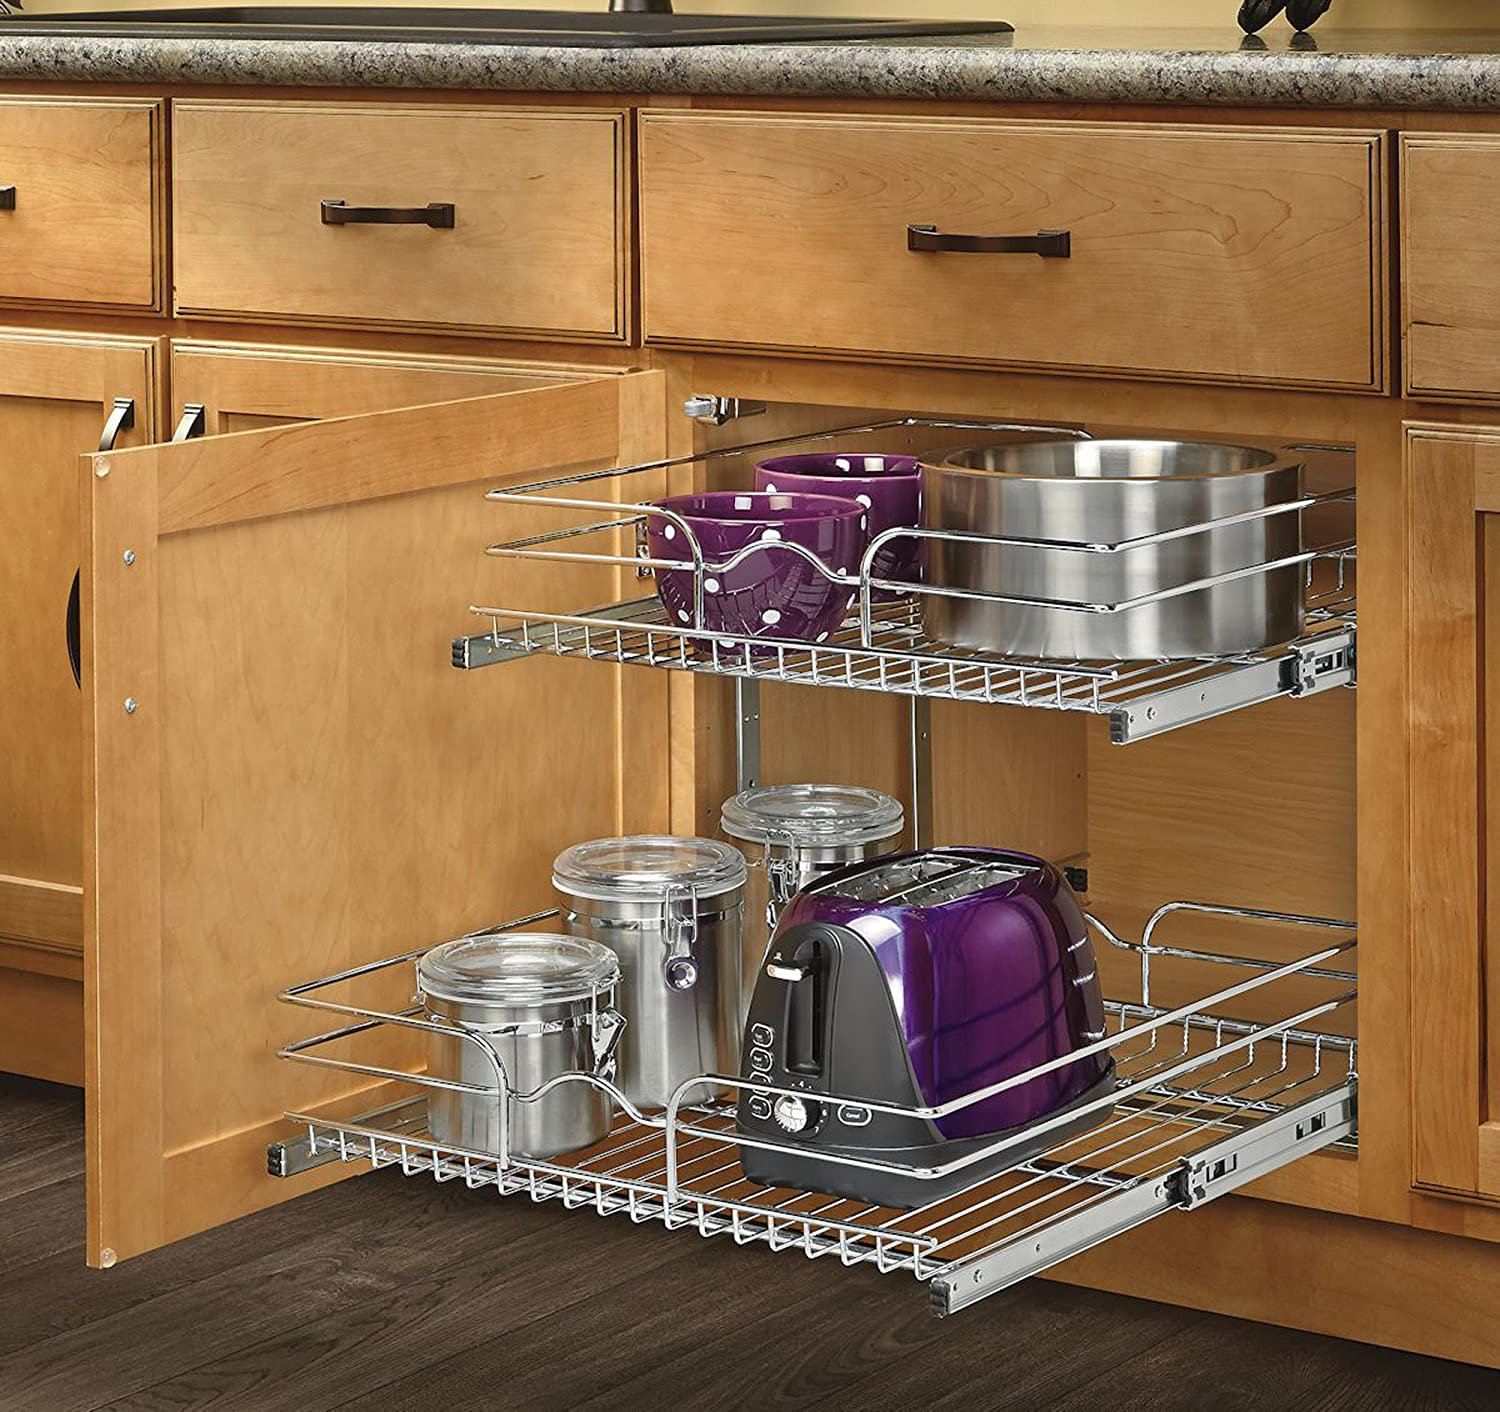 kitchen utensils storage cabinet pull out cabinet organizer pots pans utensils 2 tier wire 22115